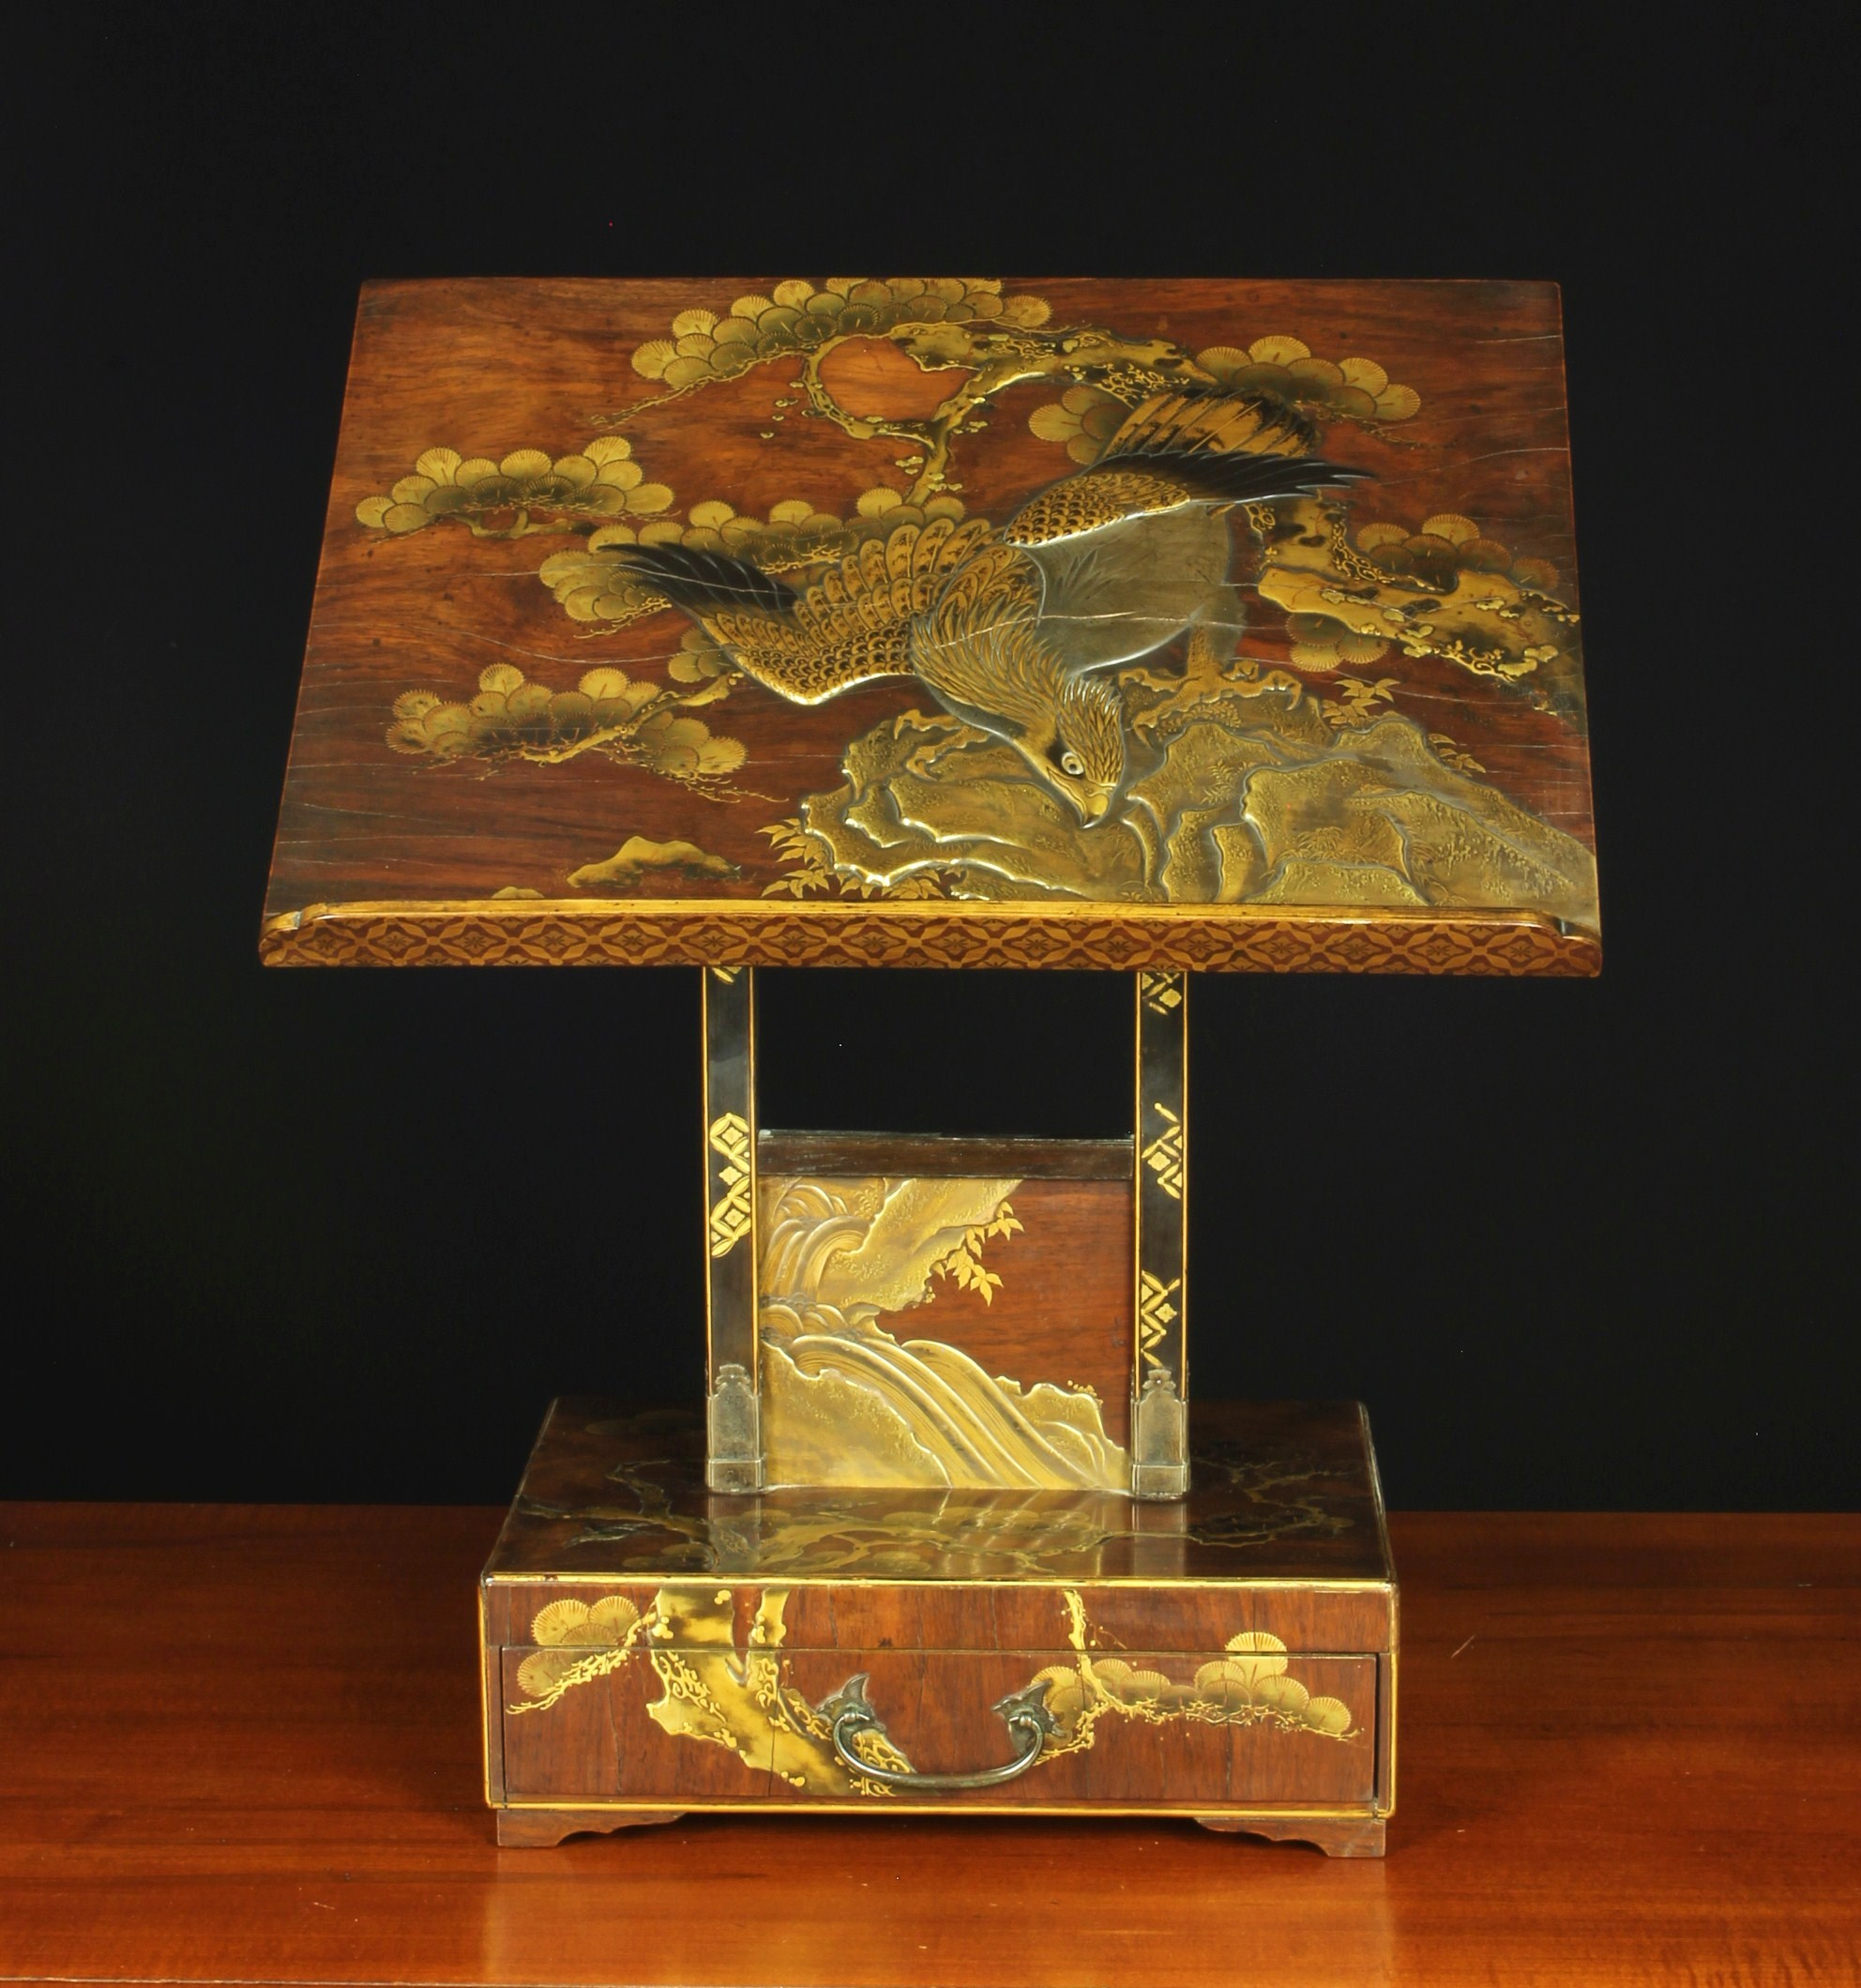 A Fine 19th Century Oriental Lacquered Rosewood Book Stand with drawer. - Image 2 of 2